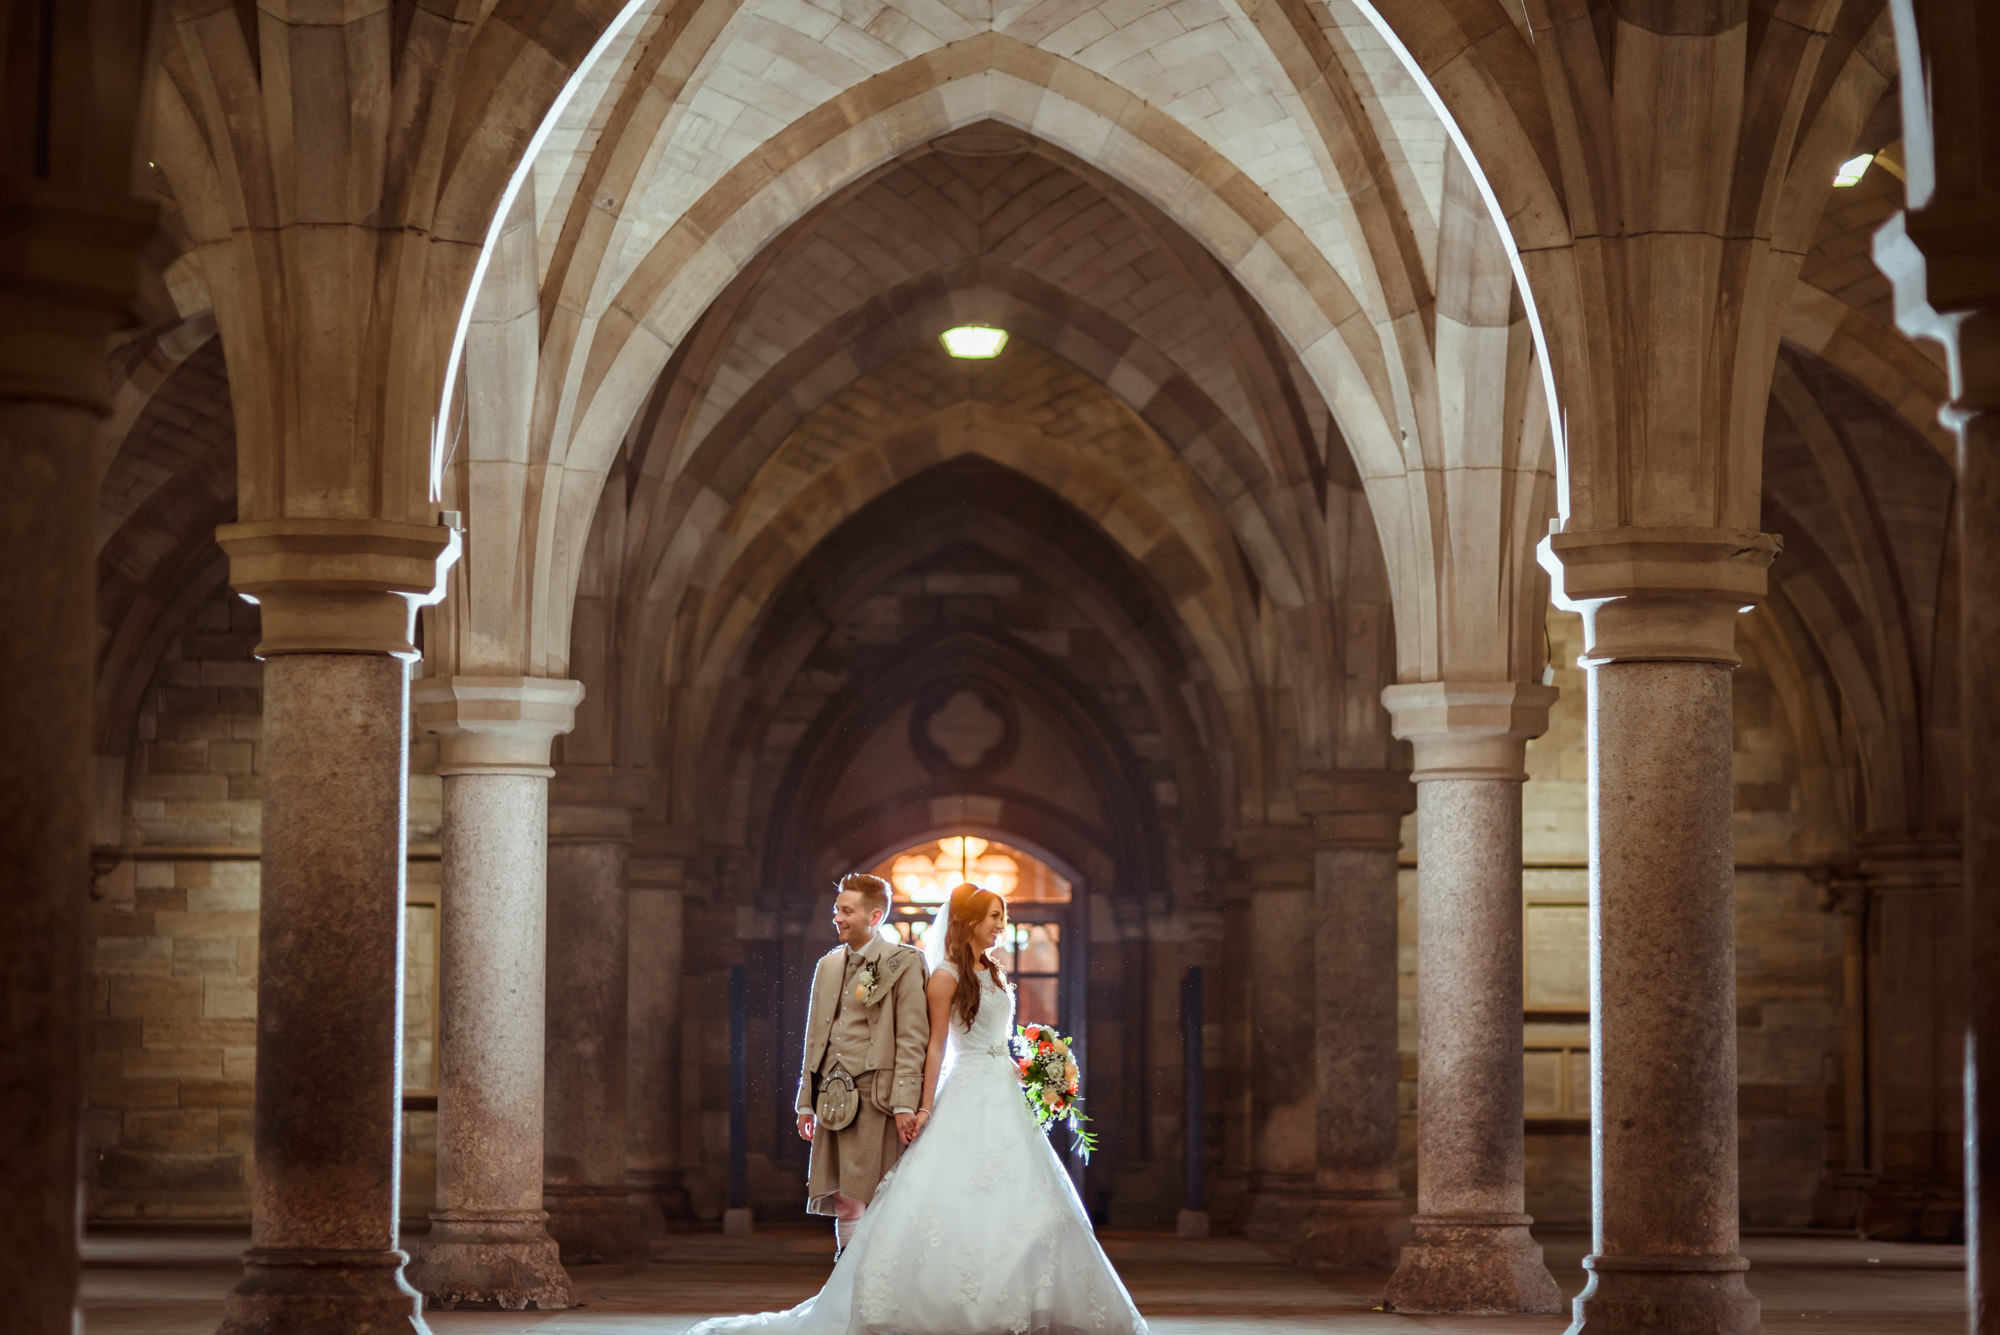 creative-wedding-photography-glasgow-university.jpg